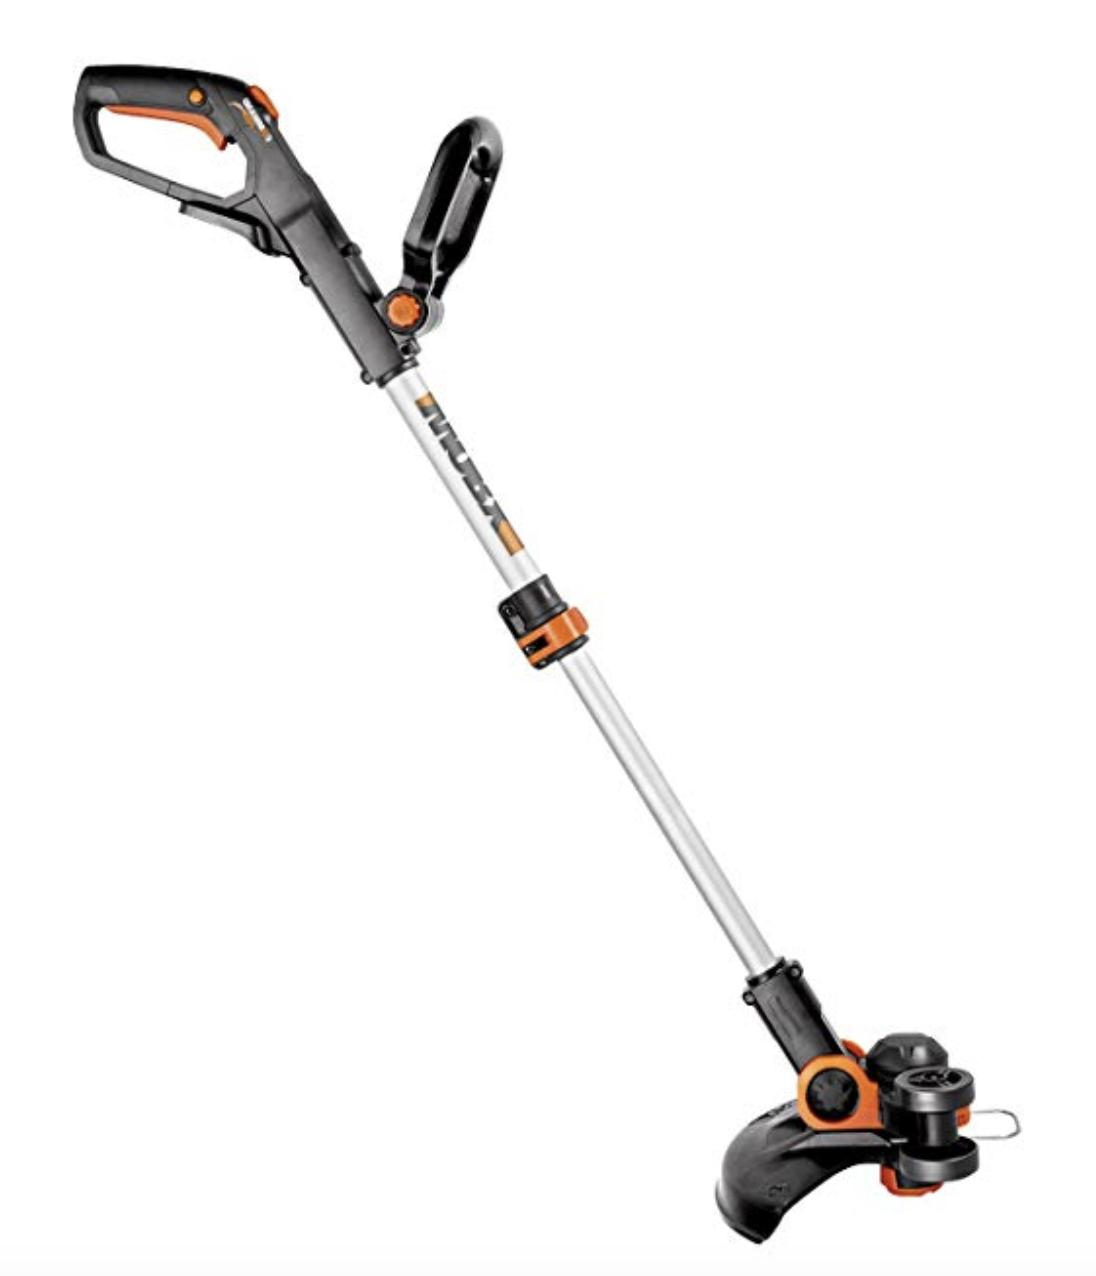 20V Worx Weed Eater Cordless Grass Trimmer Lawn